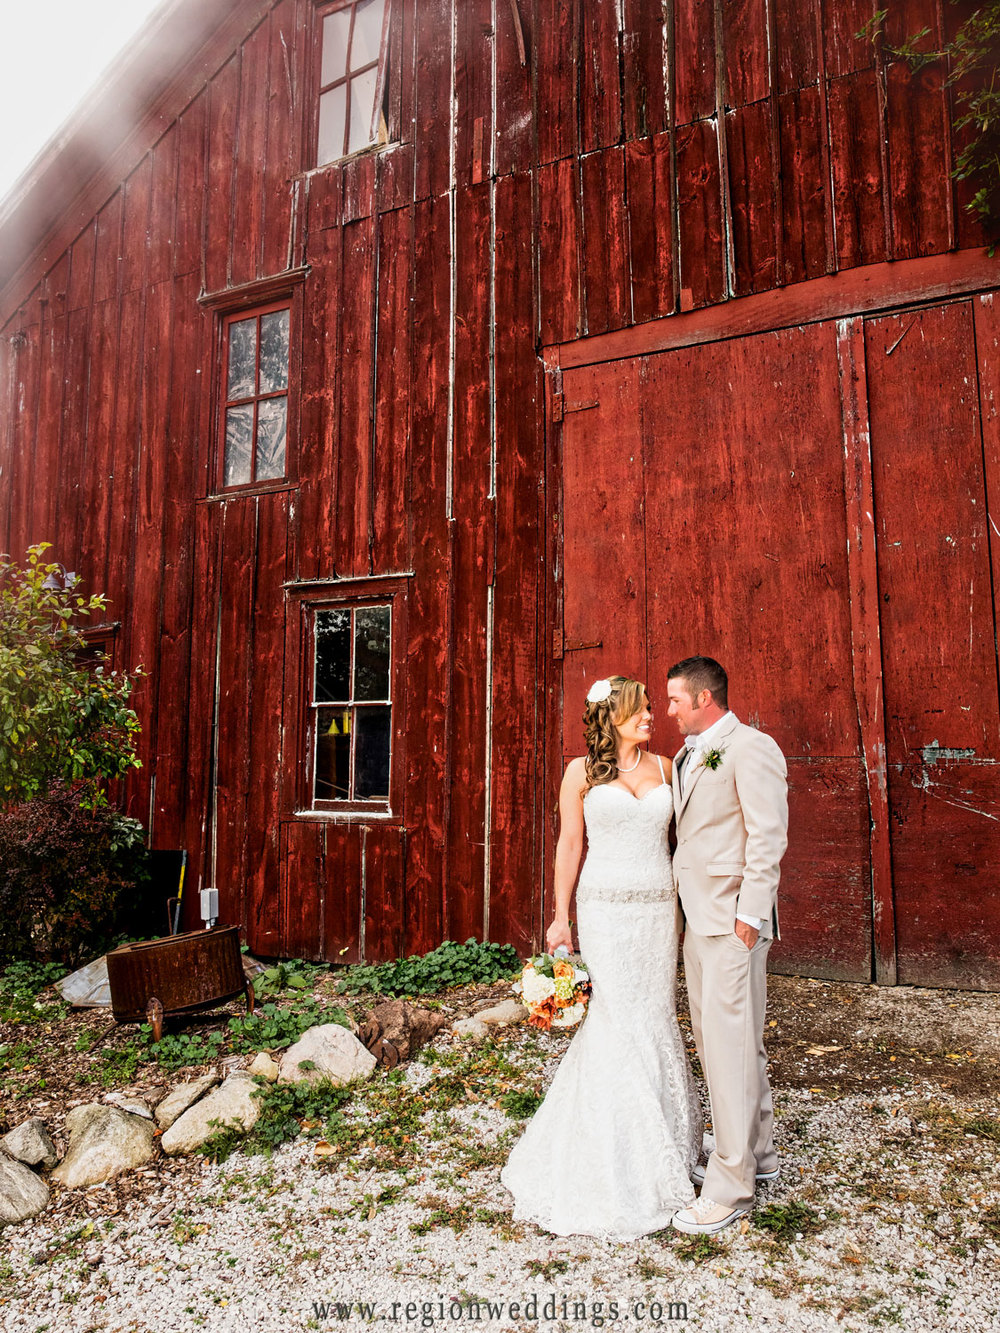 Sun rays illuminate the behind the red barn as the bride and groom gaze at each other.